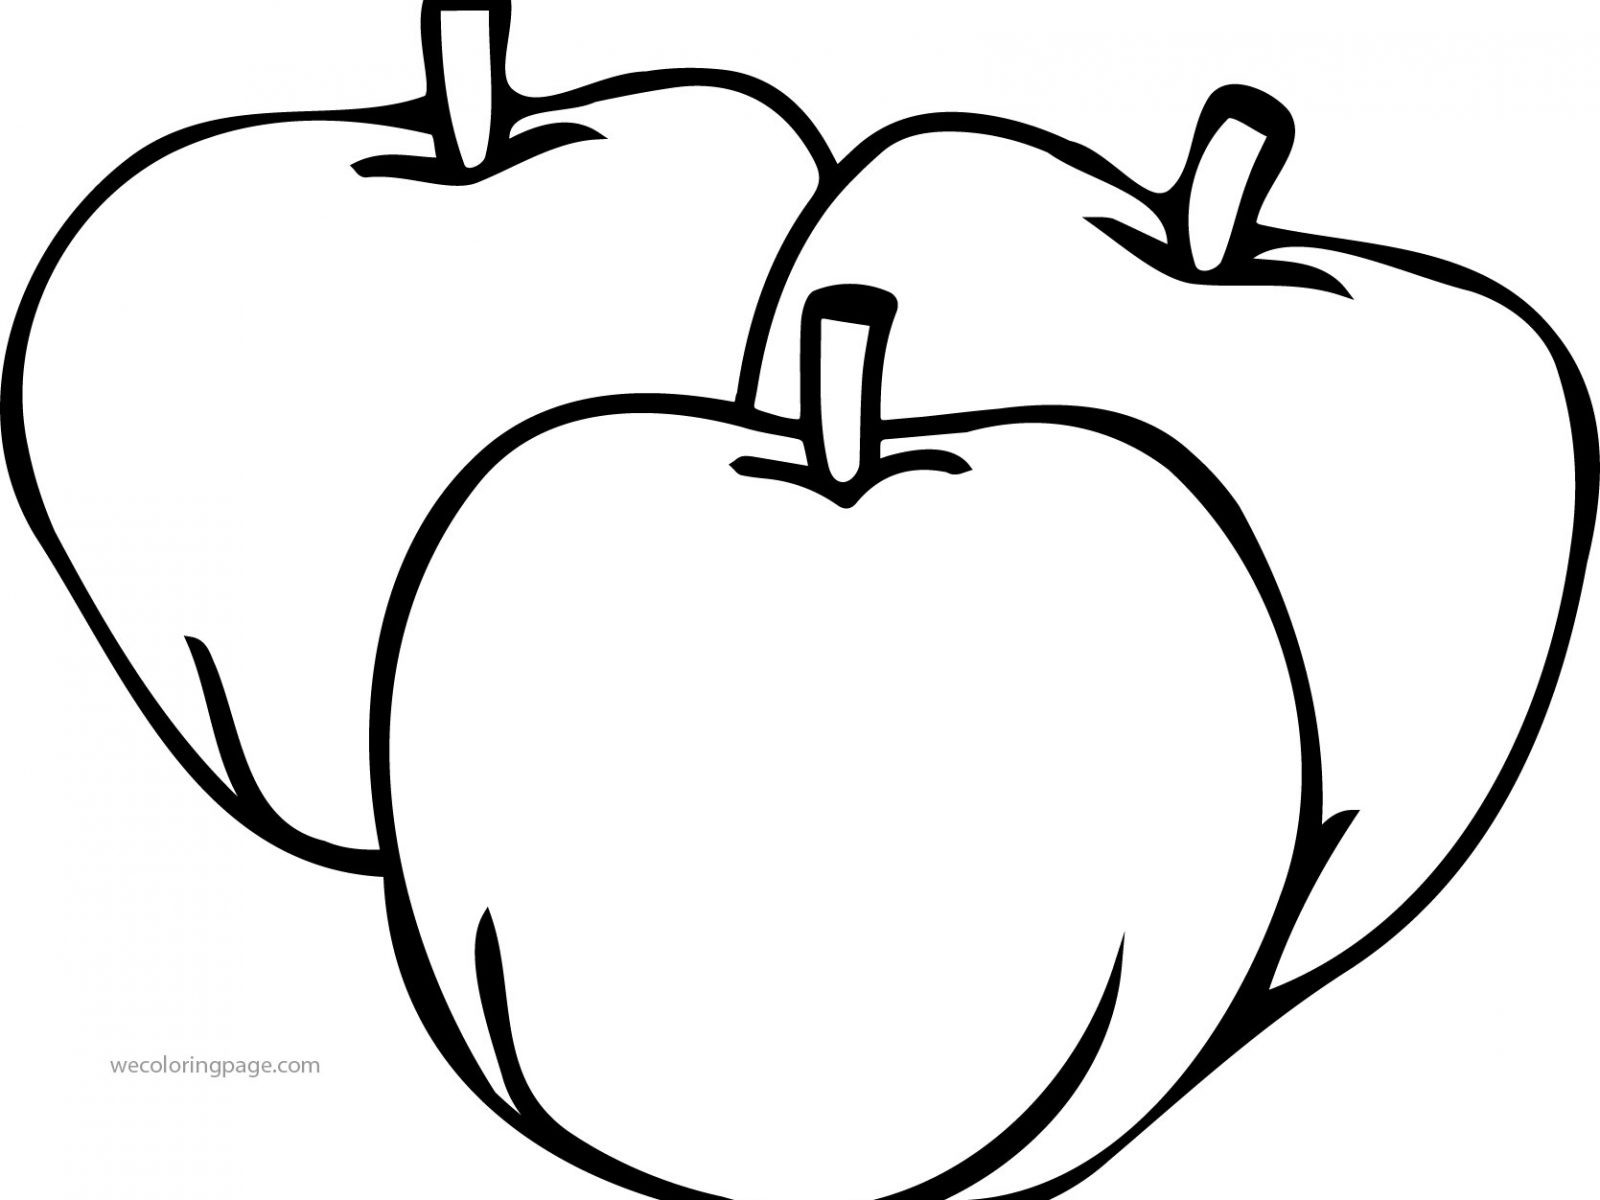 coloring pages apple apple outline coloring page coloring home pages coloring apple